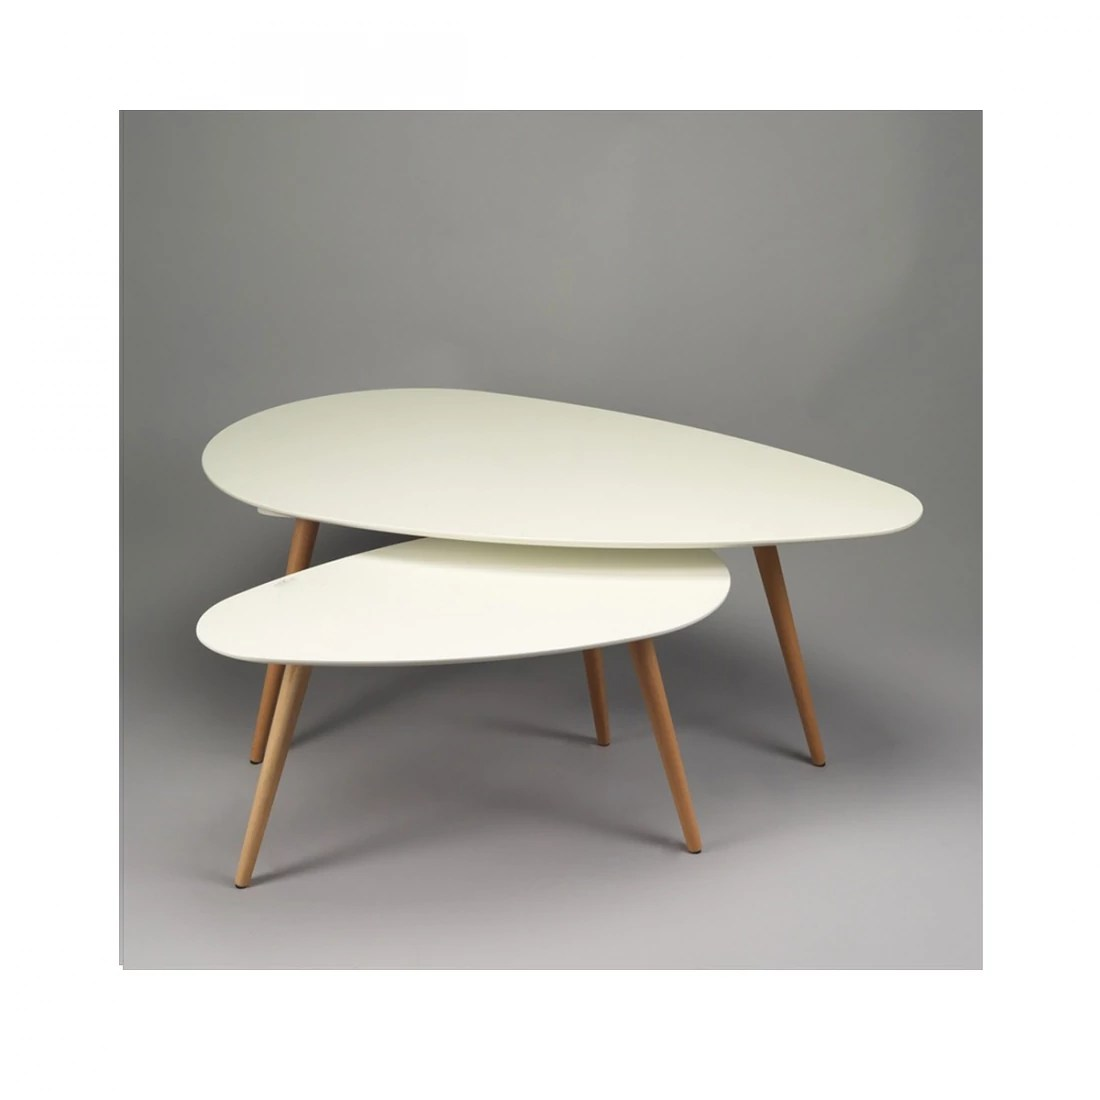 Table Basse Gigogne Design Tables Basses Gigognes Design Zendart Design